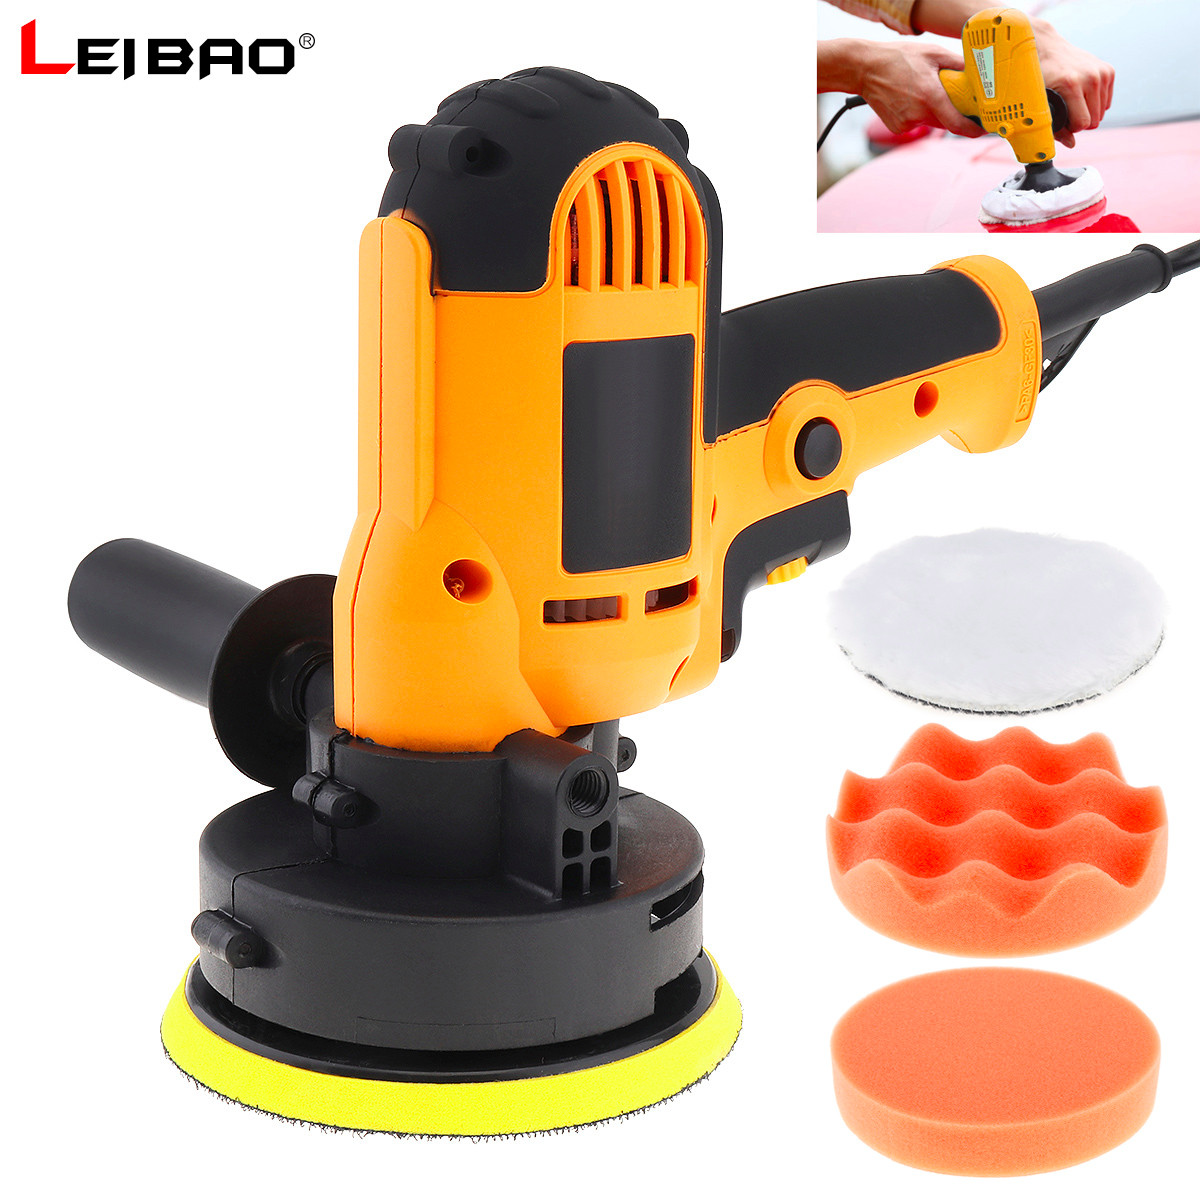 220V 700W Electric Polisher Floor Scratch Repair Sealing Glaze Waxing Machine Self adhesive Sanding Disc for